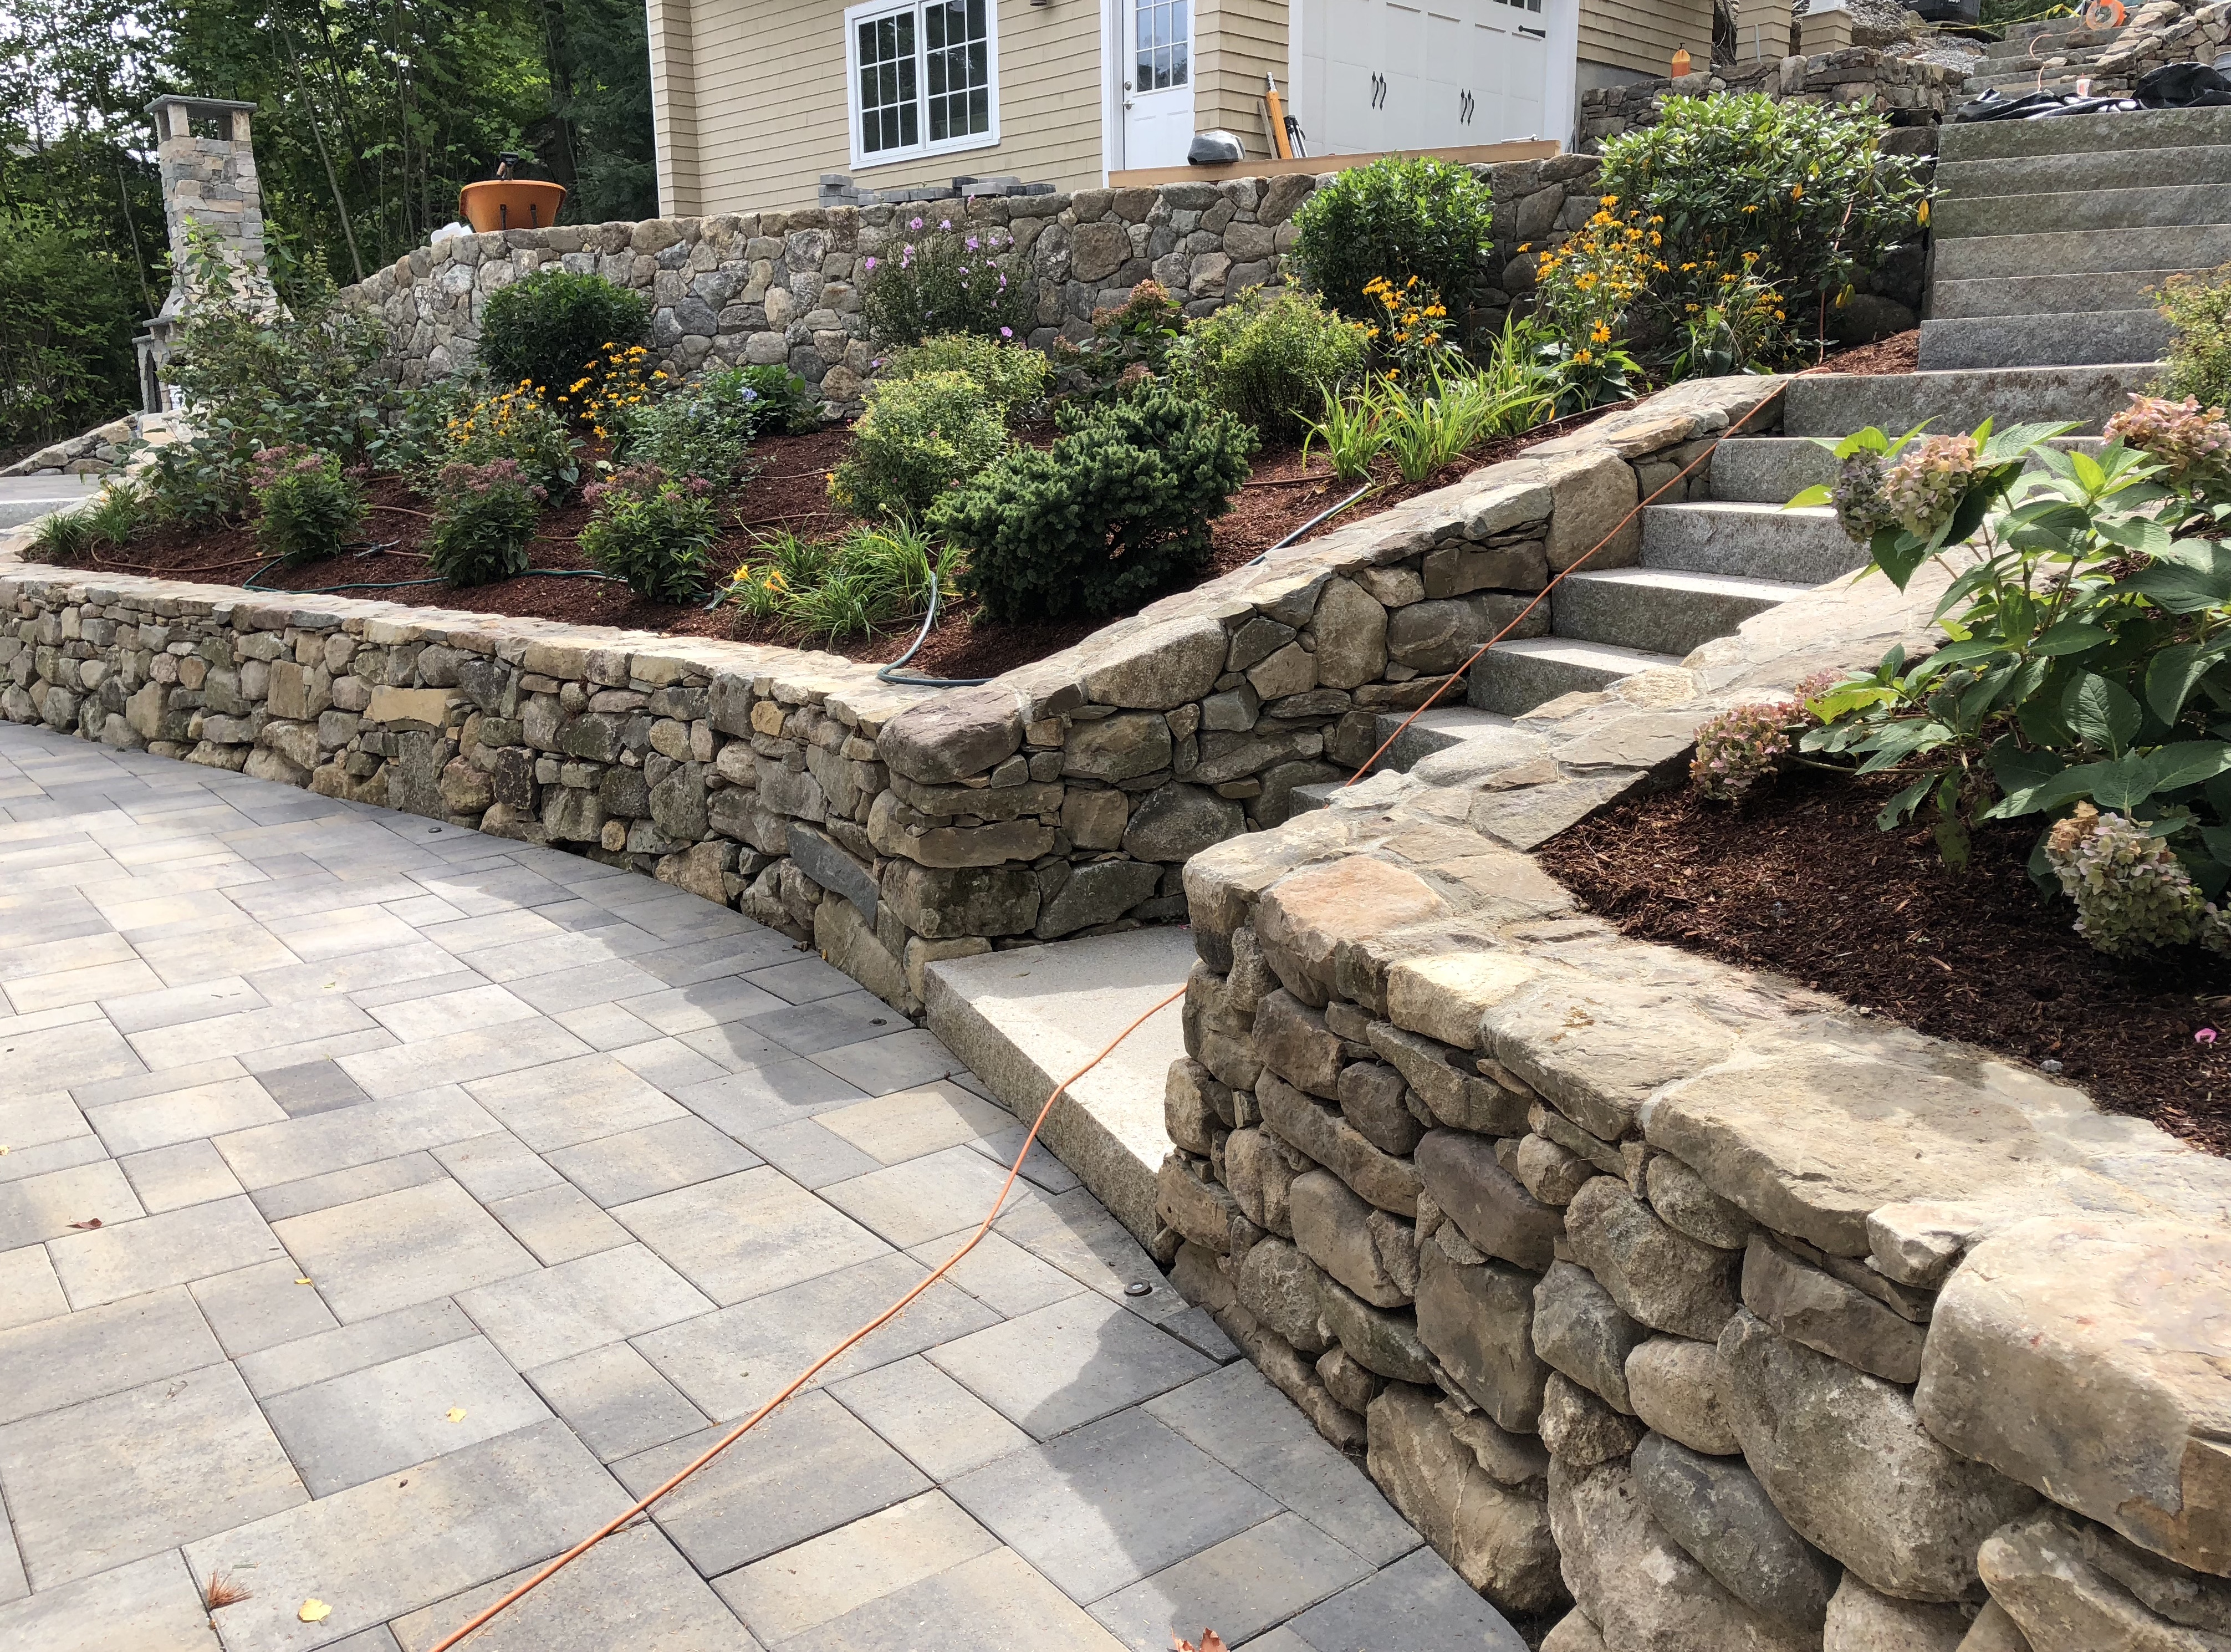 After Stone Wall, Steps, and Garden